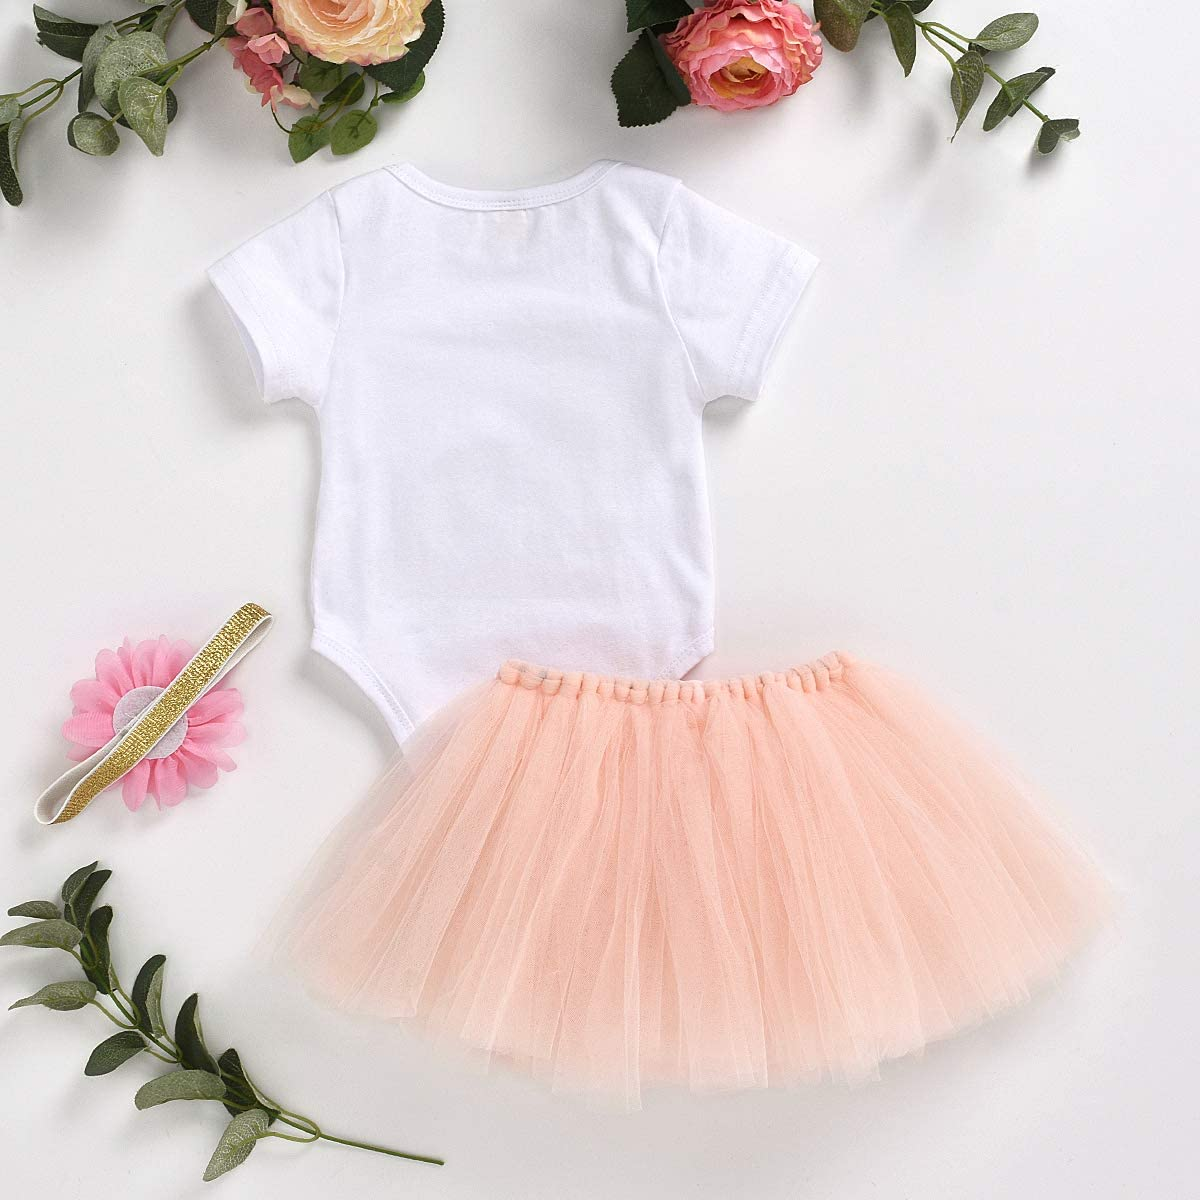 Red Tutu Skirt Set Newborn Baby Girl Clothes My First Valentines Day Outfits Romper Bows Headband 3pcs Infant Set